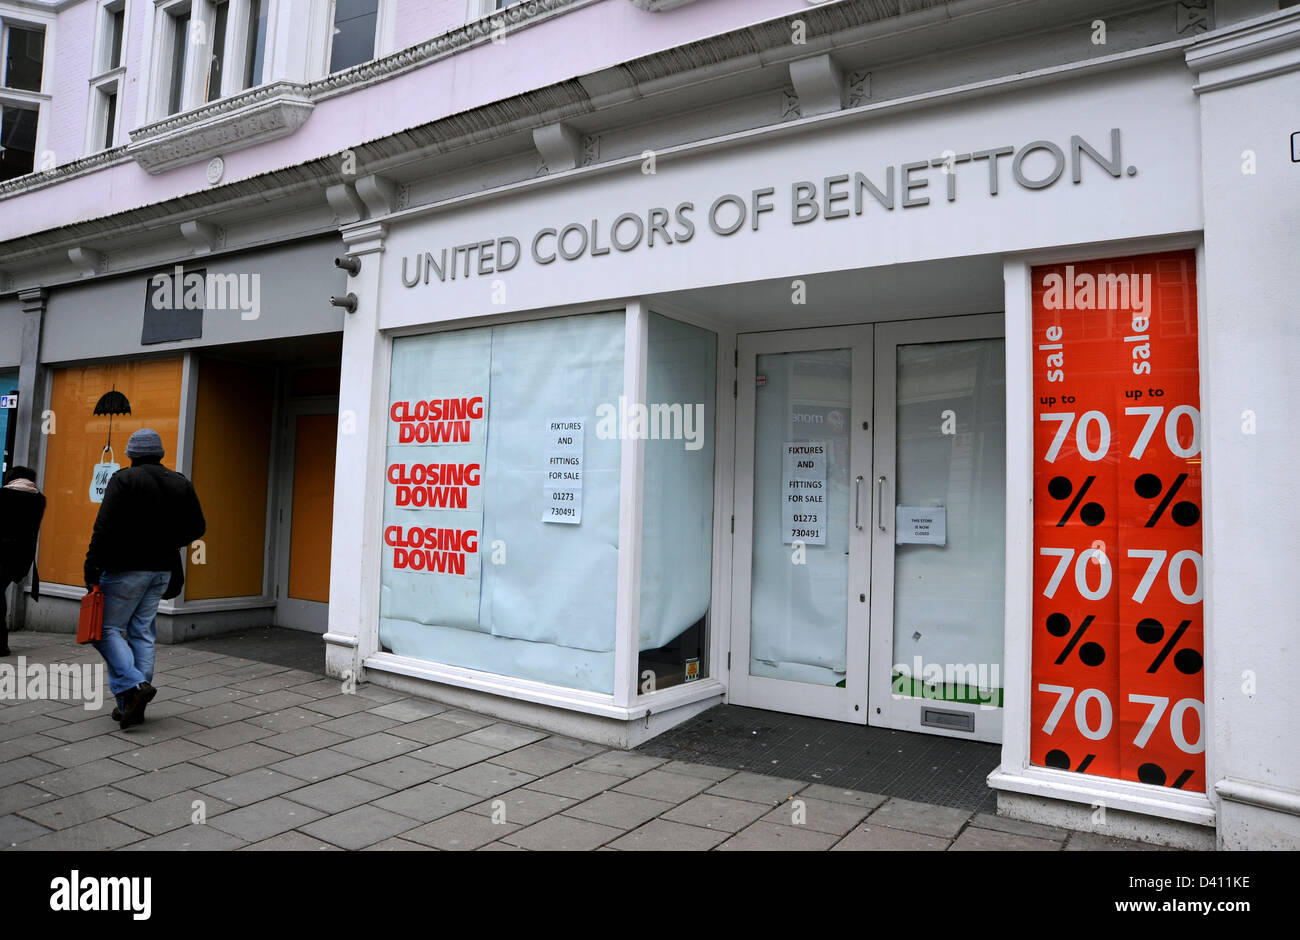 The United Colors of Benetton shop which has closed down in North Street Brighton UK - Stock Image